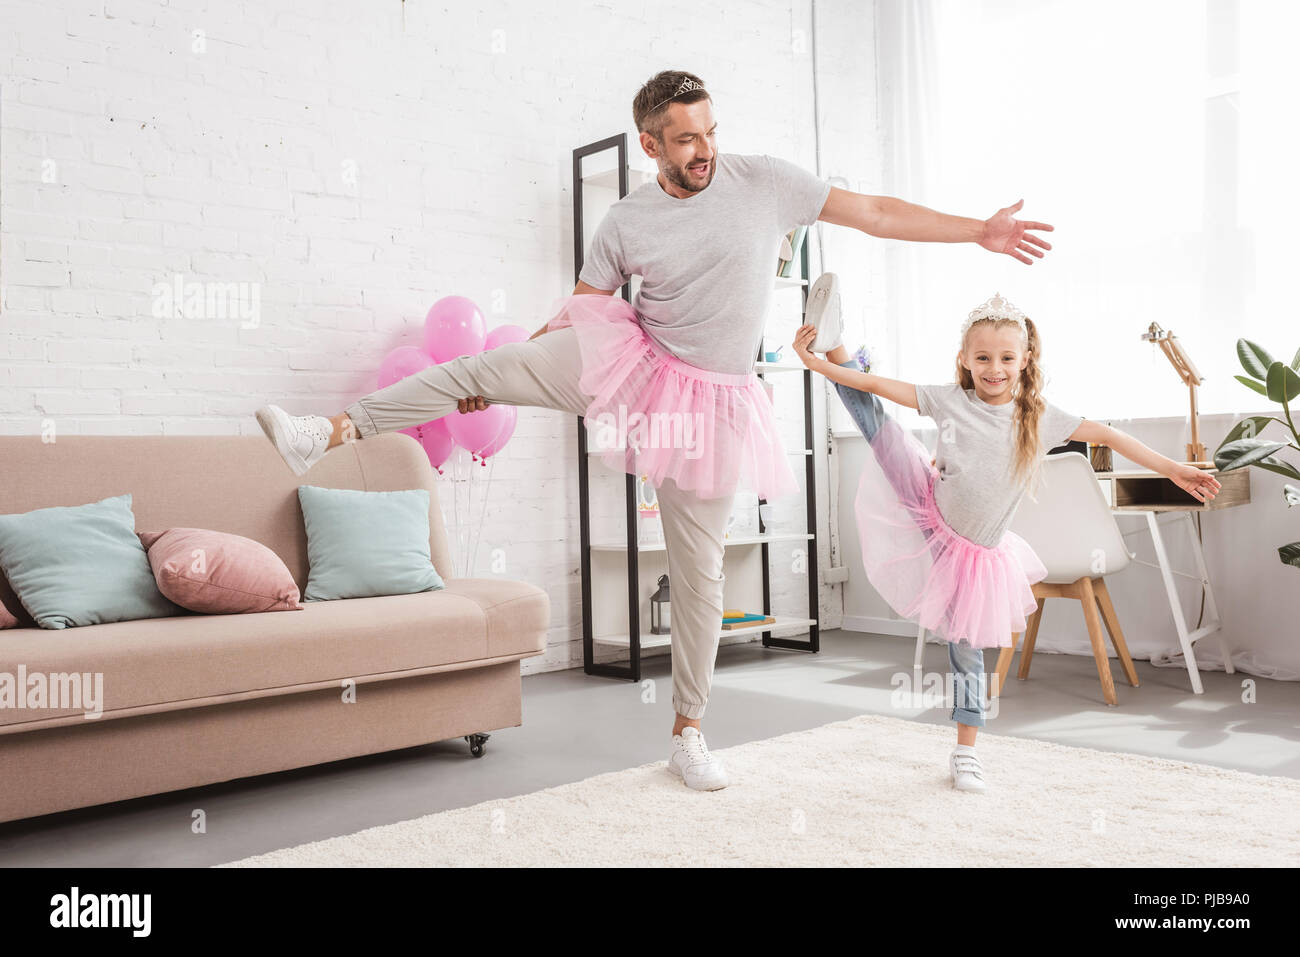 front view of father and daughter in tutu skirts standing on one leg - Stock Image